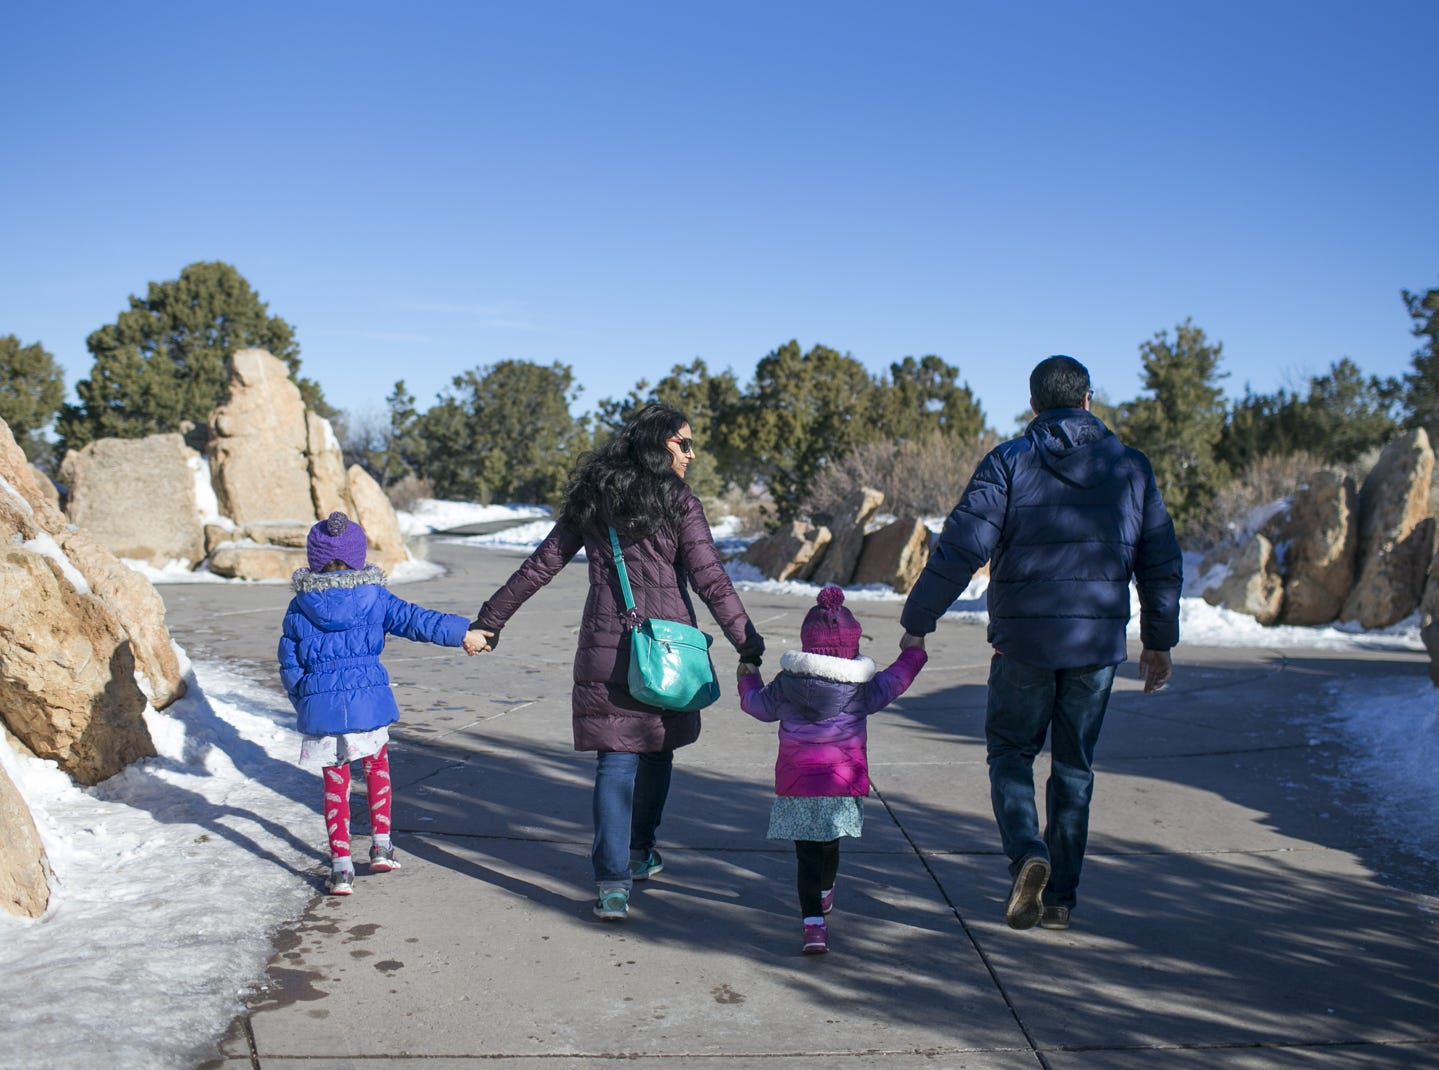 Neha Sharma (center left) holds hands with her daughters, 5-year-old Navya Sharma (left) and 2-year-old Avanya Sharma (center right), as they walk with their father, Vivek Rohilla (right), at Grand Canyon National Park while visiting from Seattle on Jan. 4, 2019. The park was staffed at minimum capacity due to the government shutdown but retained much of its services due to an executive order issued by Arizona Gov. Doug Ducey to run the park with state funds in the event of a shutdown.